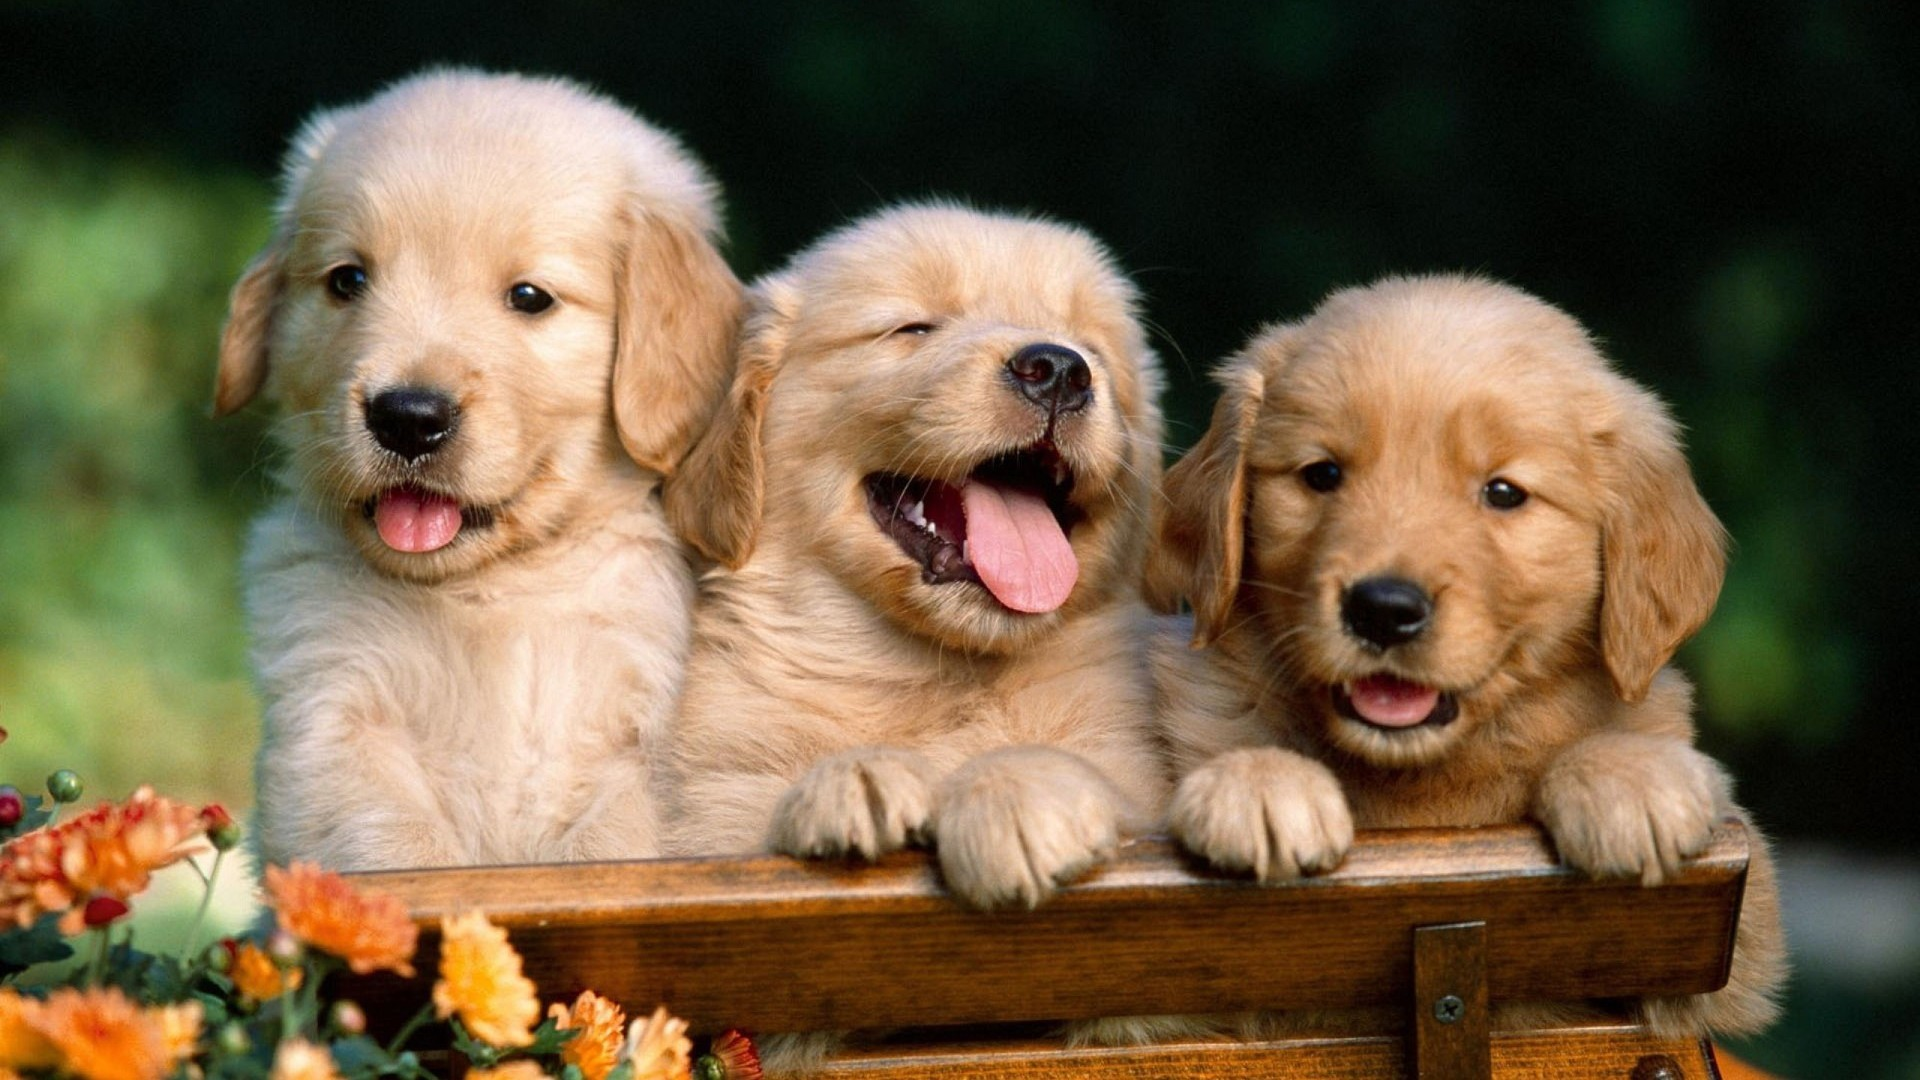 Kitten And Puppy Wallpapers Mobile